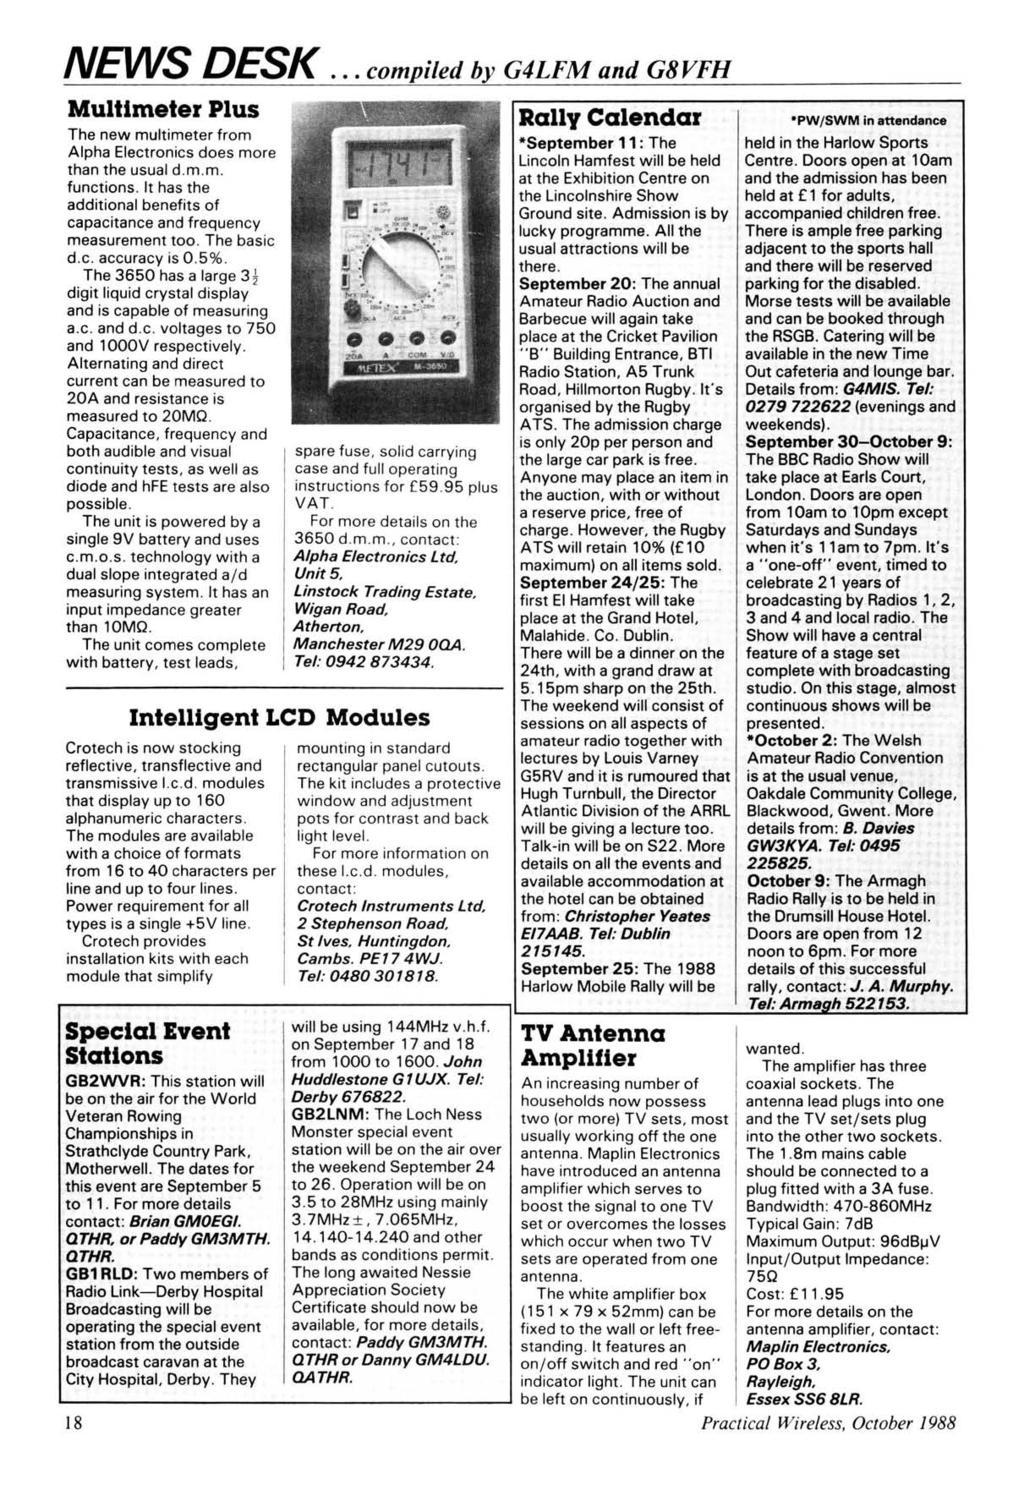 Pw Reader Questionnaire Your Chance To Tell Us What You Think Of 1991 Volkswagen Fox 18 Fuse Box Diagram News Desk Compiled By G4lfm And G8vfh Multlmeter Plus The New Multi Meter